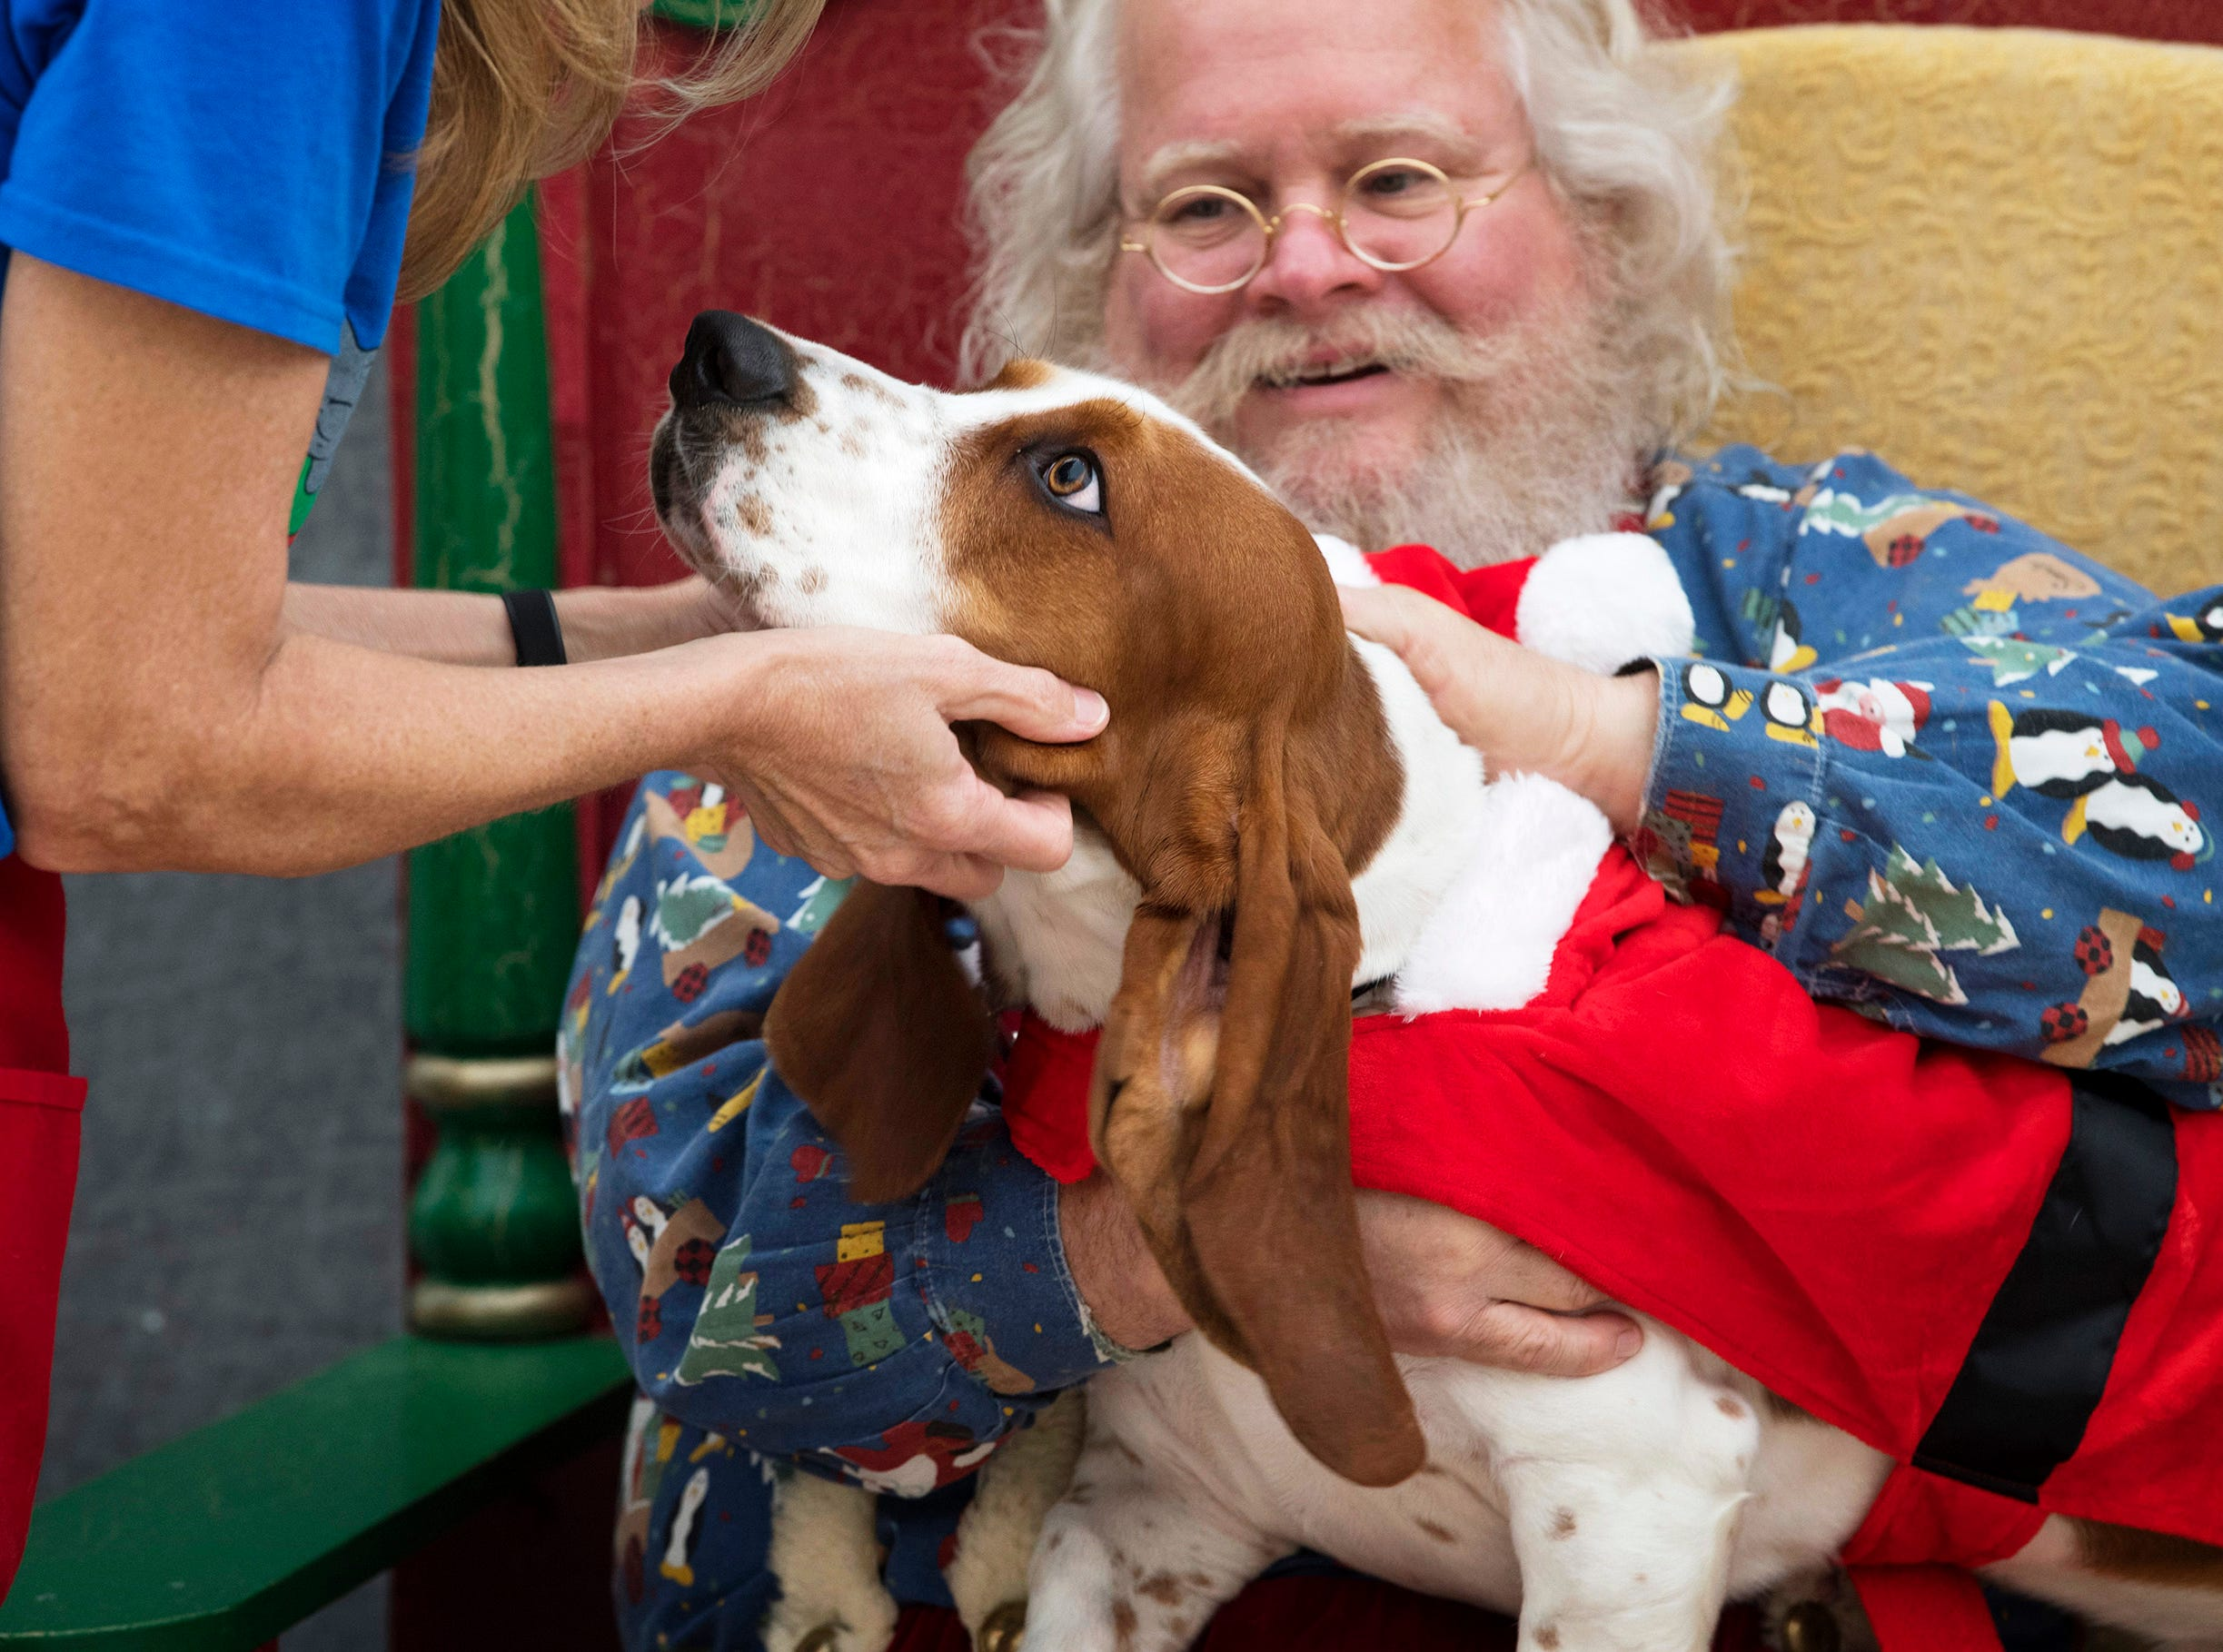 Beauford, a 1-year-old basset hound, prepares for his close-up with Santa Claus during the Vanderburgh Humane Society's Pet Pictures with Santa event at Washington Square Mall, Friday afternoon, Nov. 2, 2018.